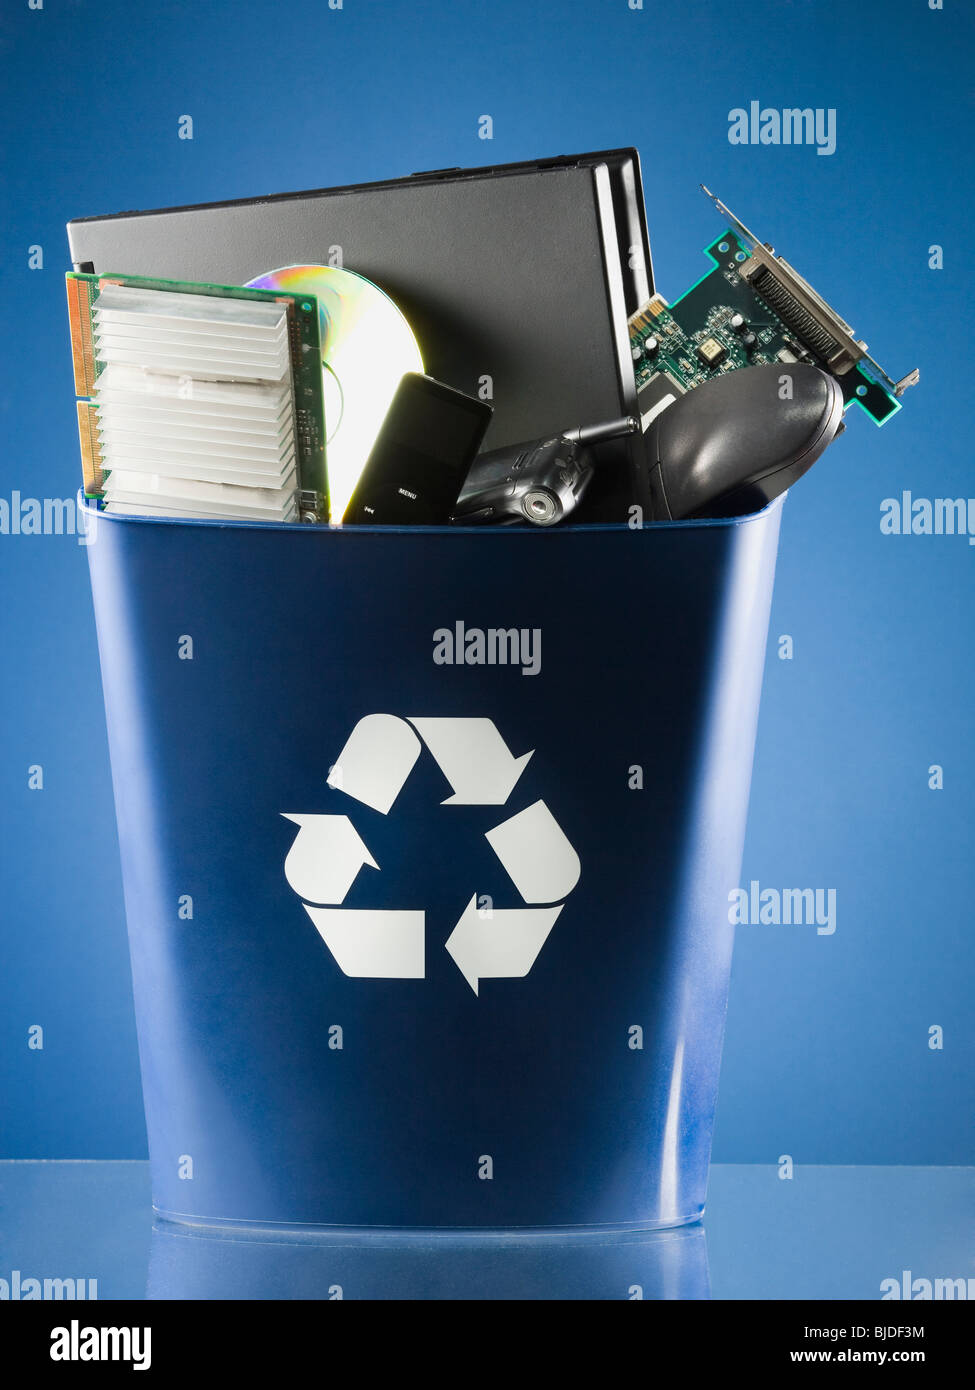 Recycling of computer parts. - Stock Image